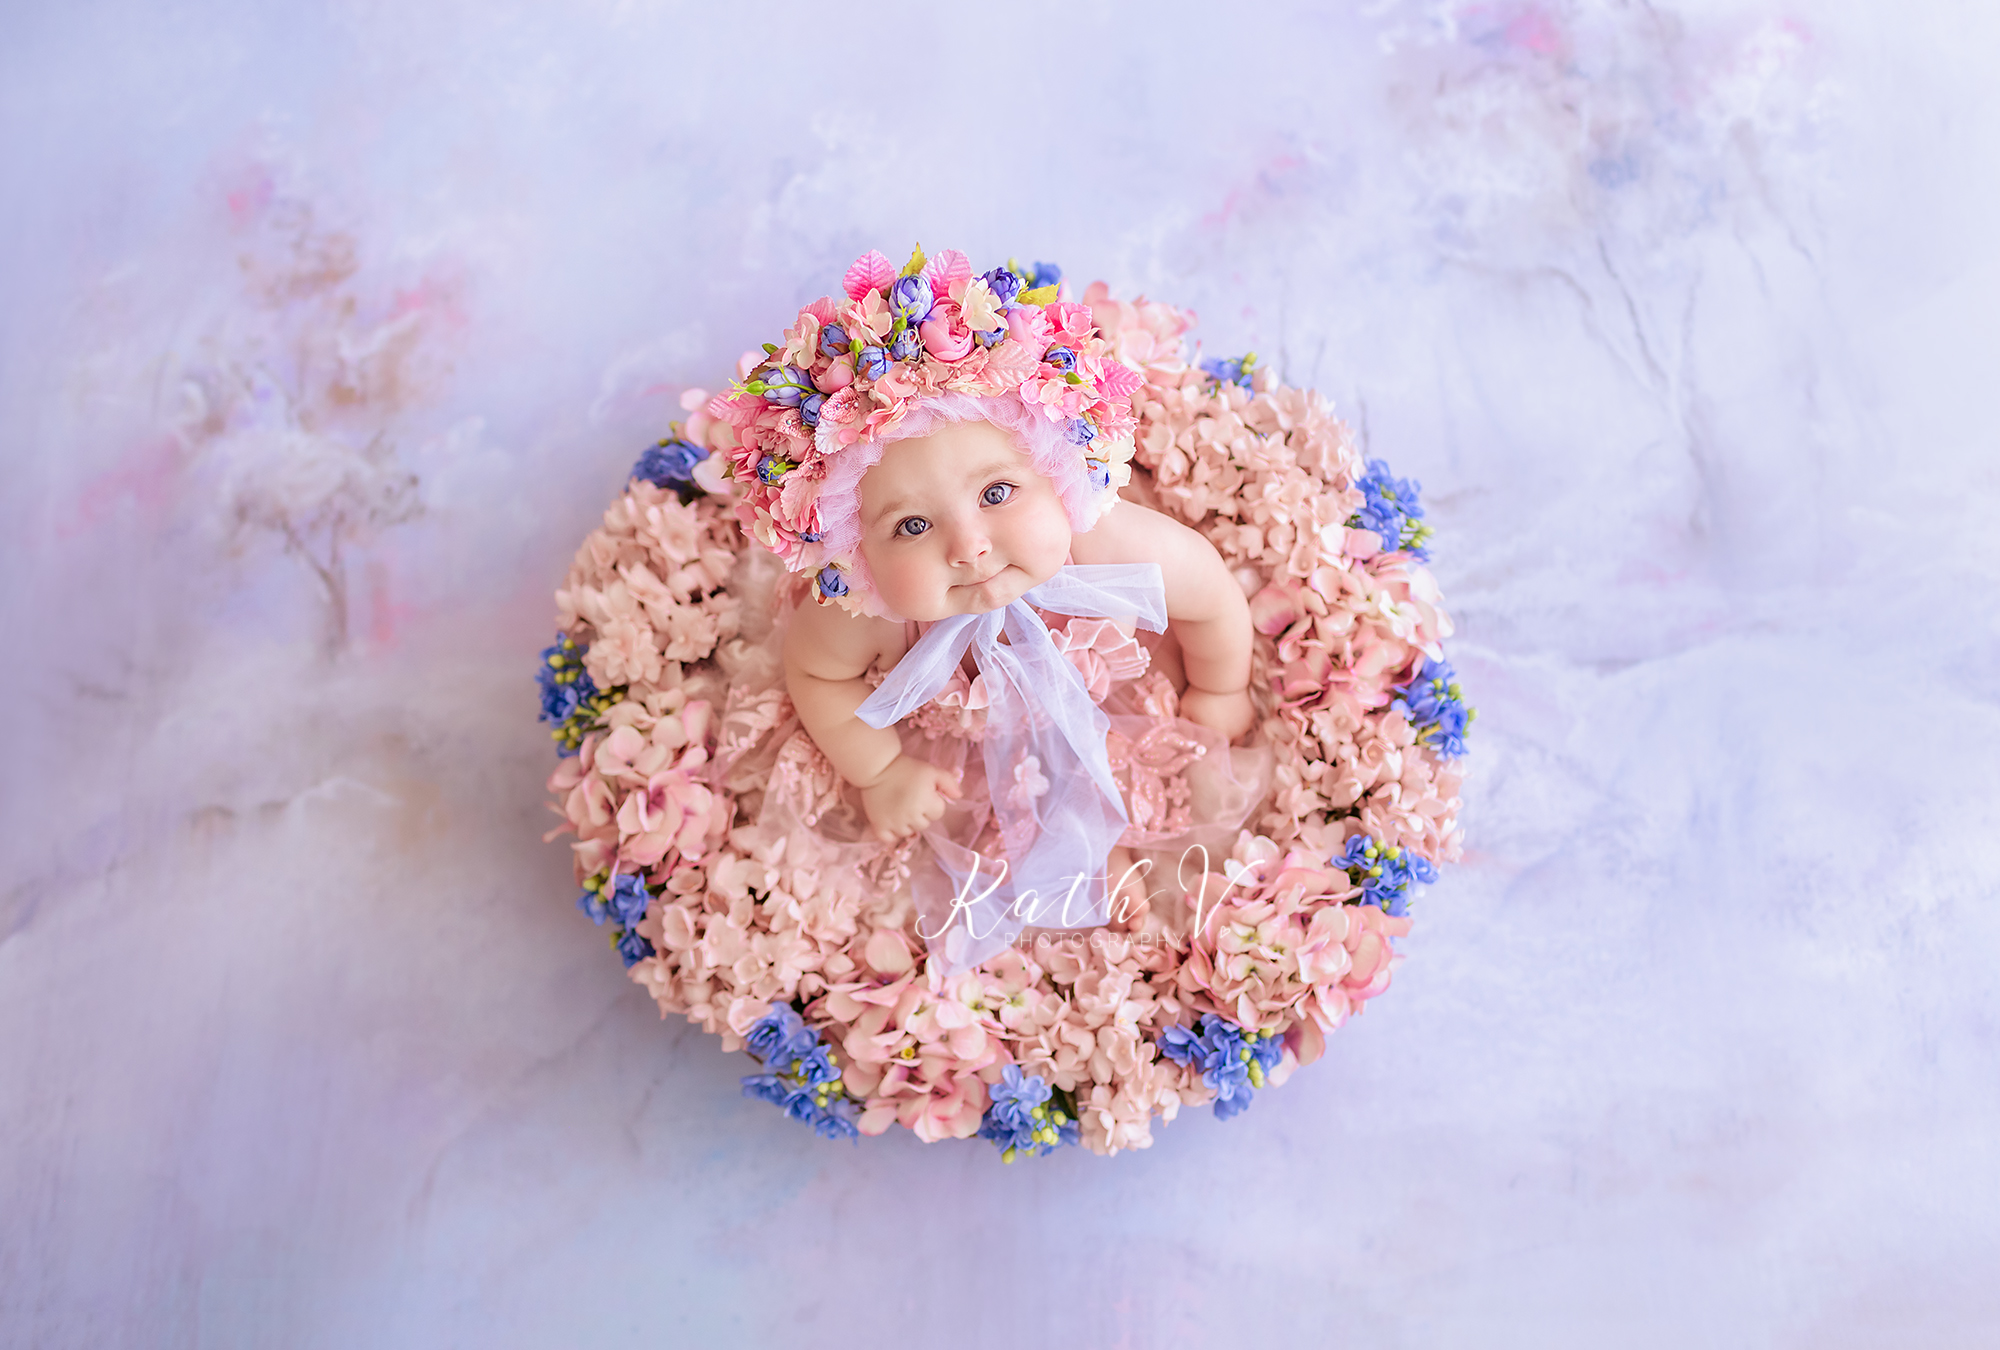 Melbourne Baby Photography | Kath V. Photography_482.jpg